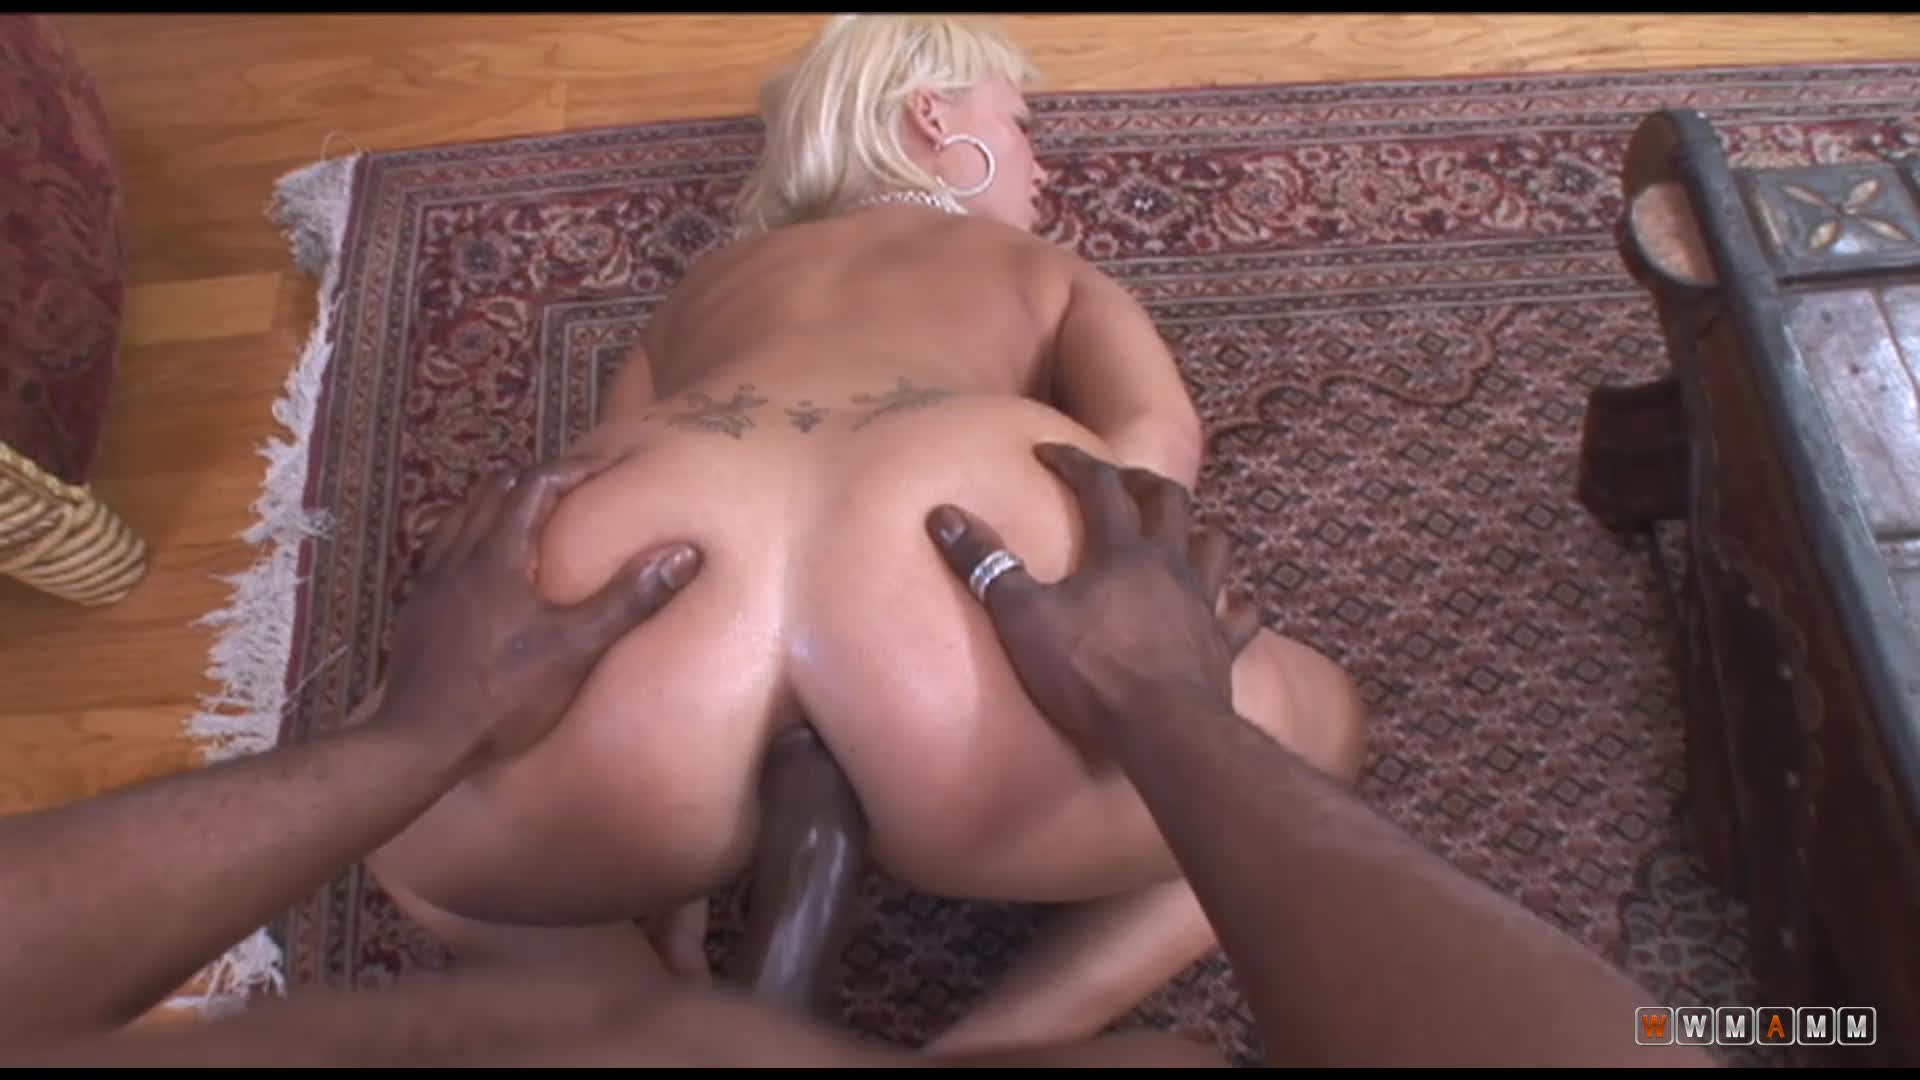 You Will Need To Use Your Both Hands For This Big Fat Ass